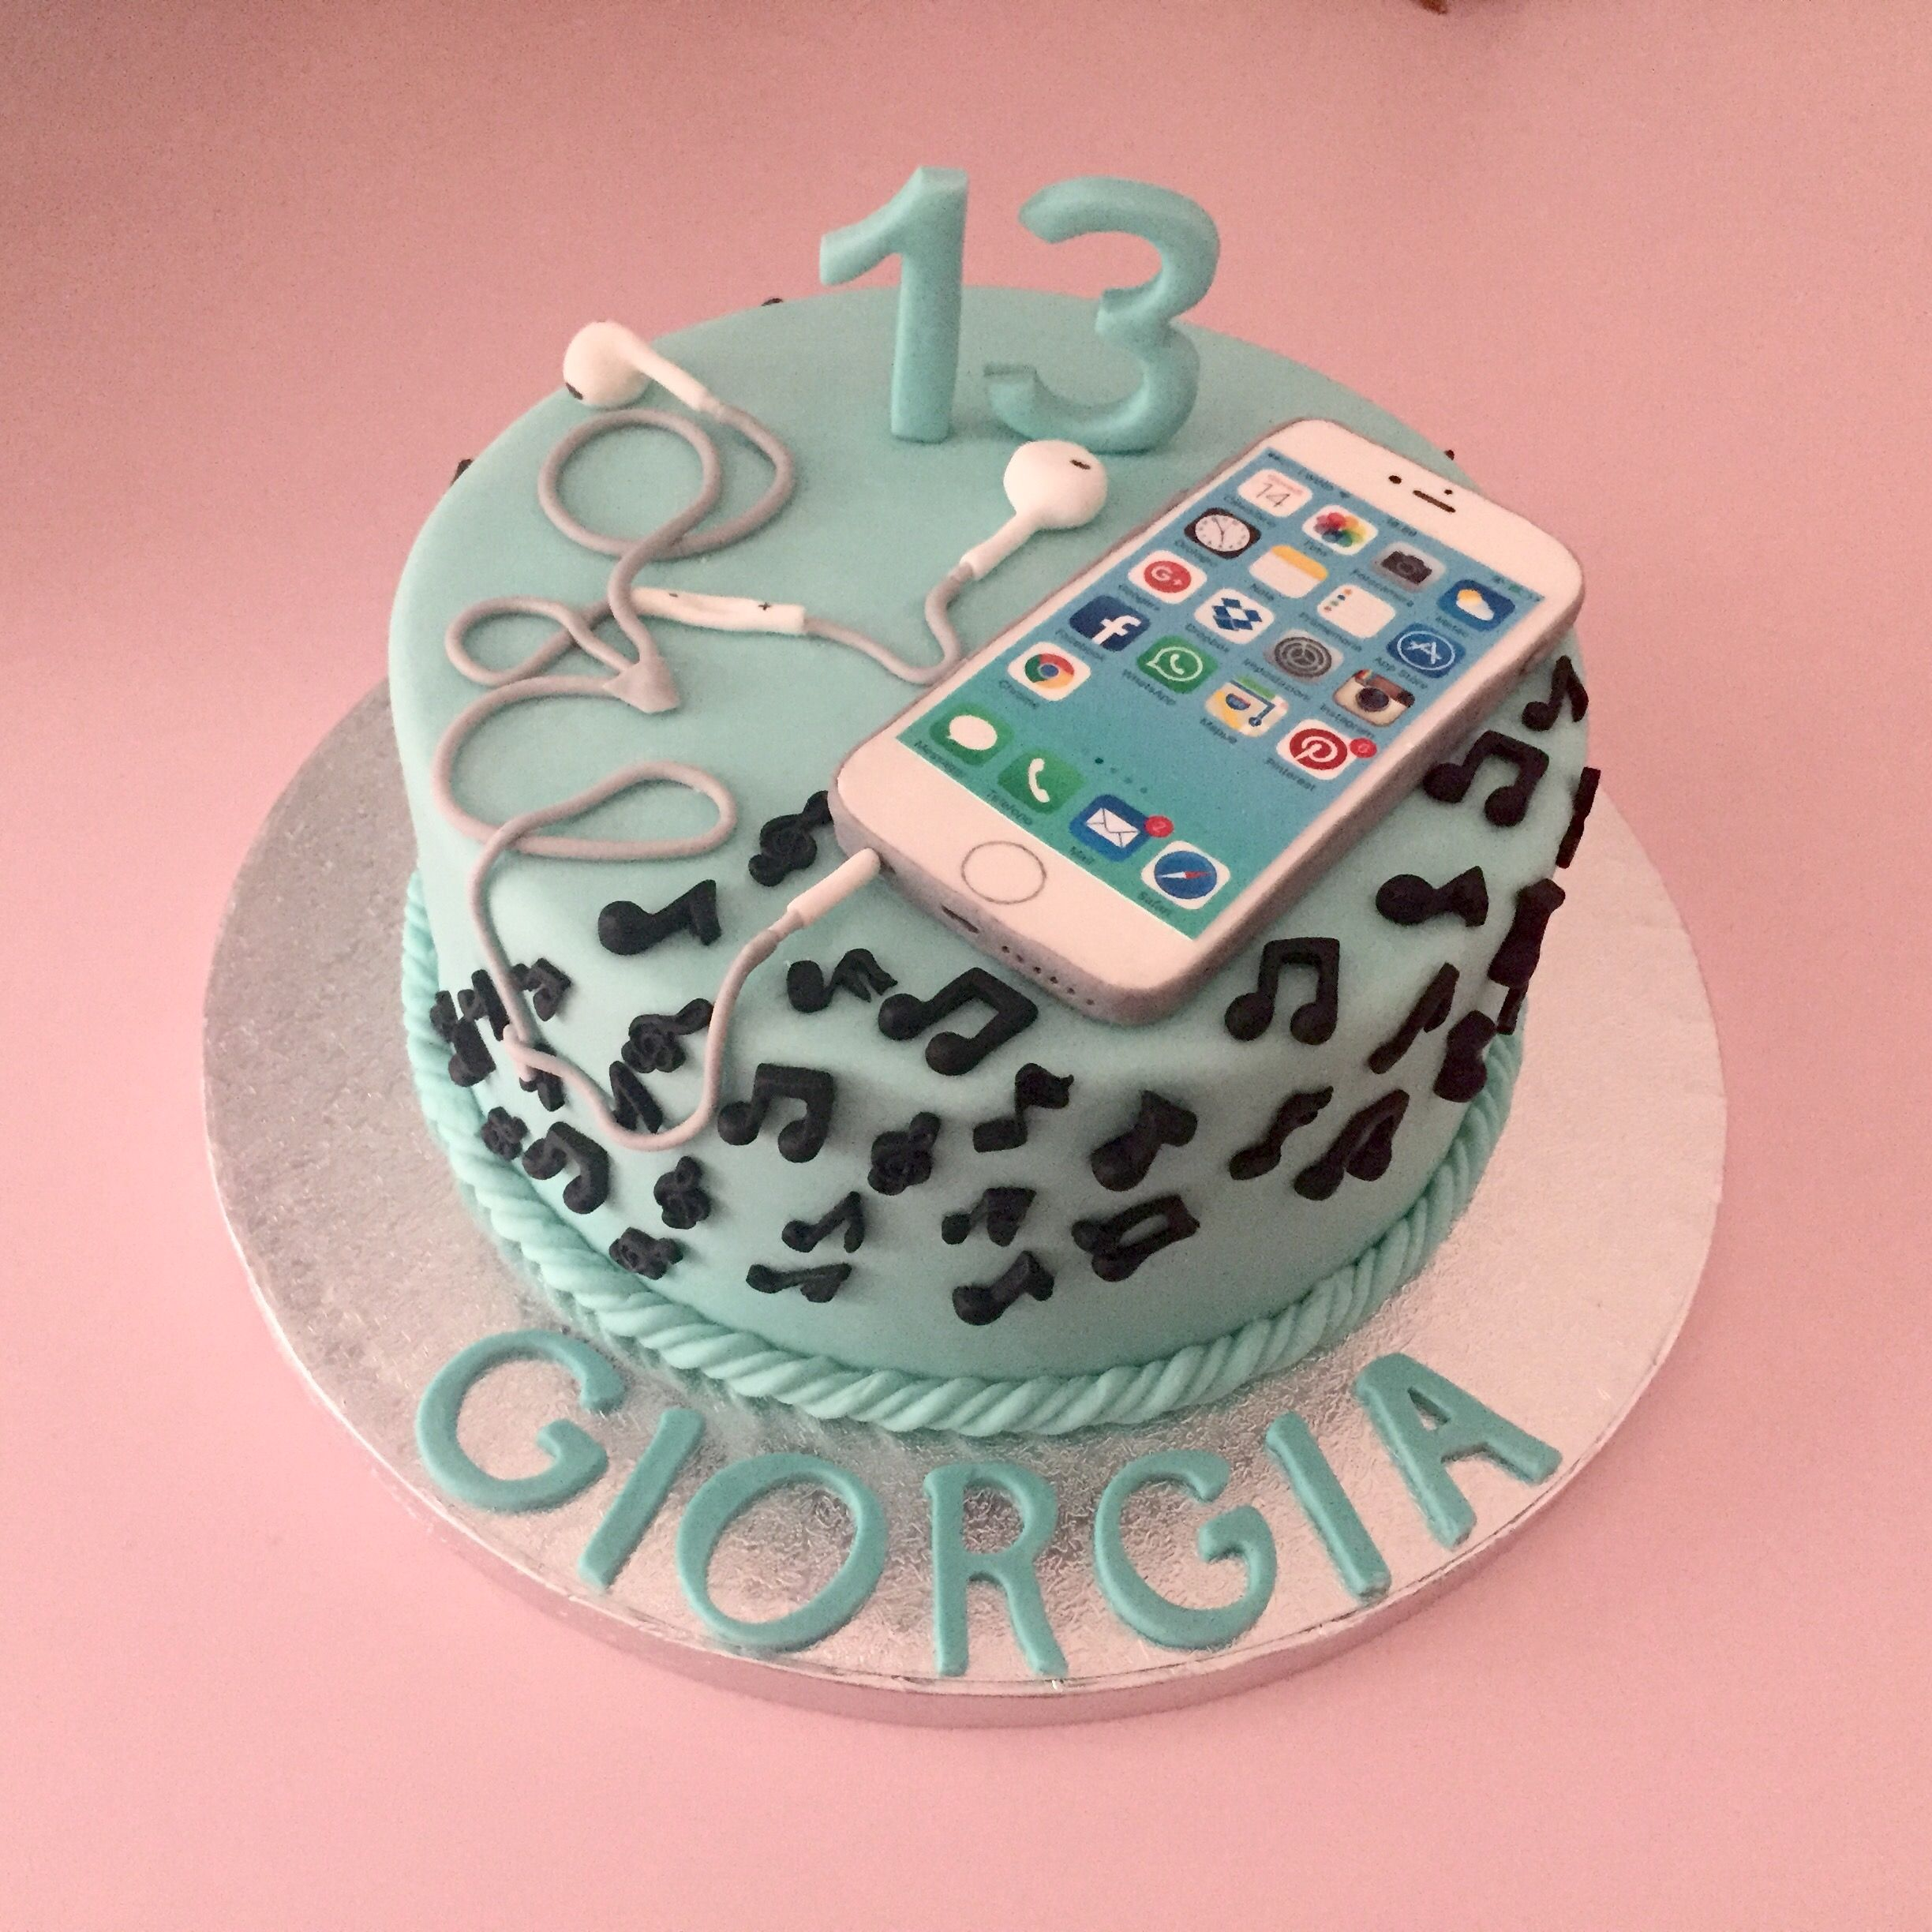 Cake Images For Teenager : torta di compleanno iPhone iPhone cake birthday cake My ...